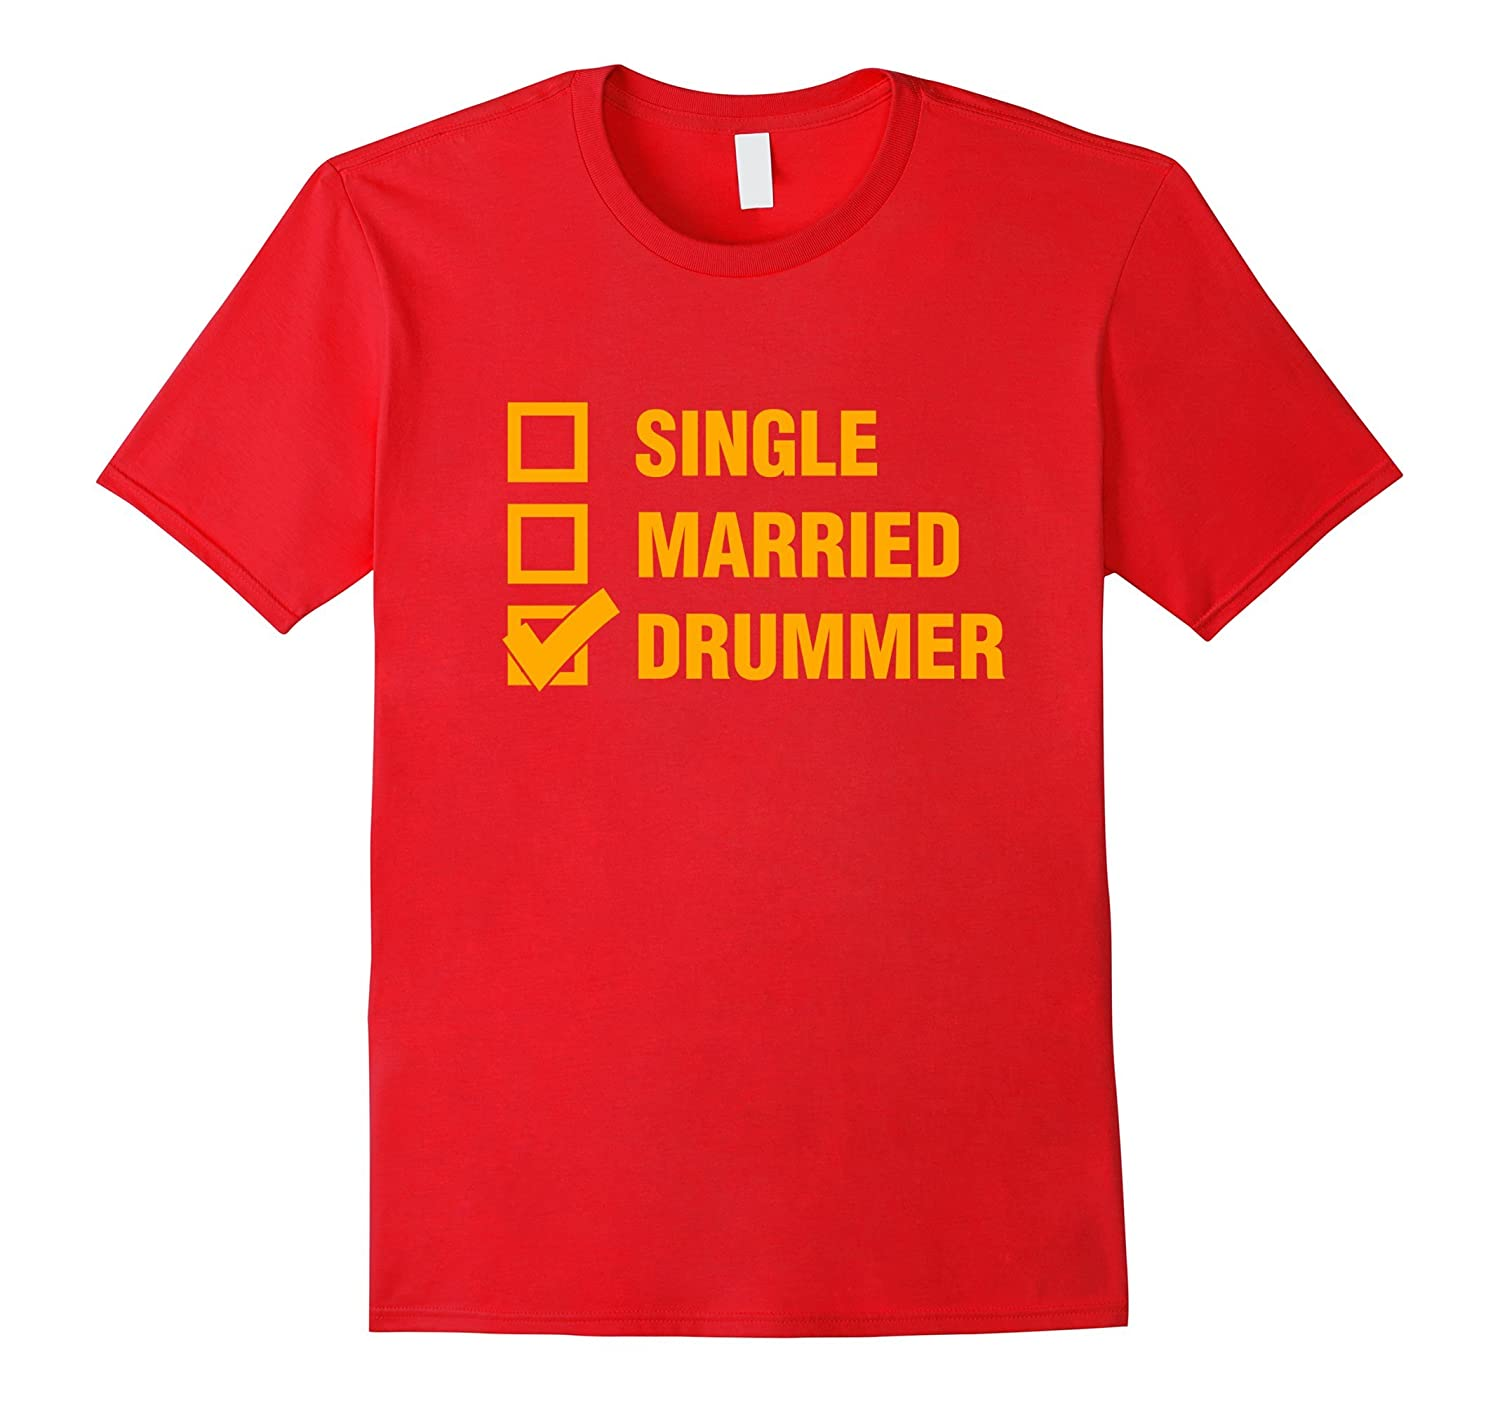 DRUMMER T SHIRT Drum Tee Musician Band Shirt FL